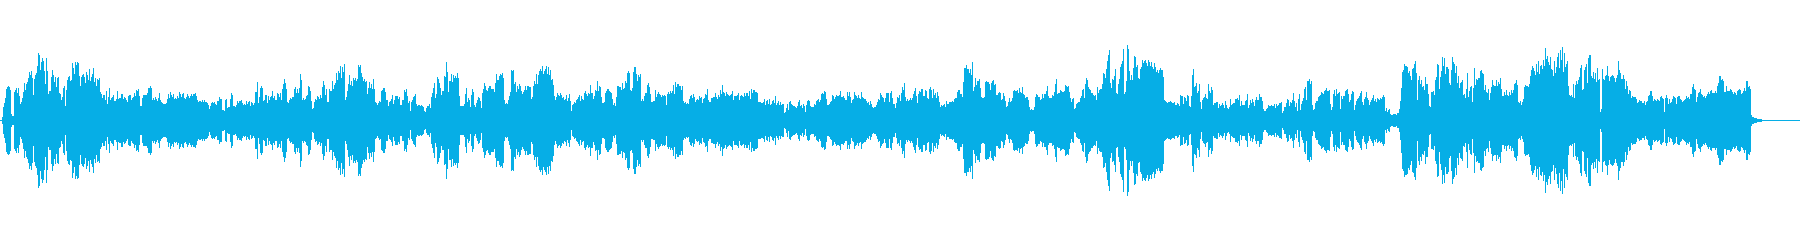 A lively song that expresses the joy of the arrival of the summer sun's reproduced waveform